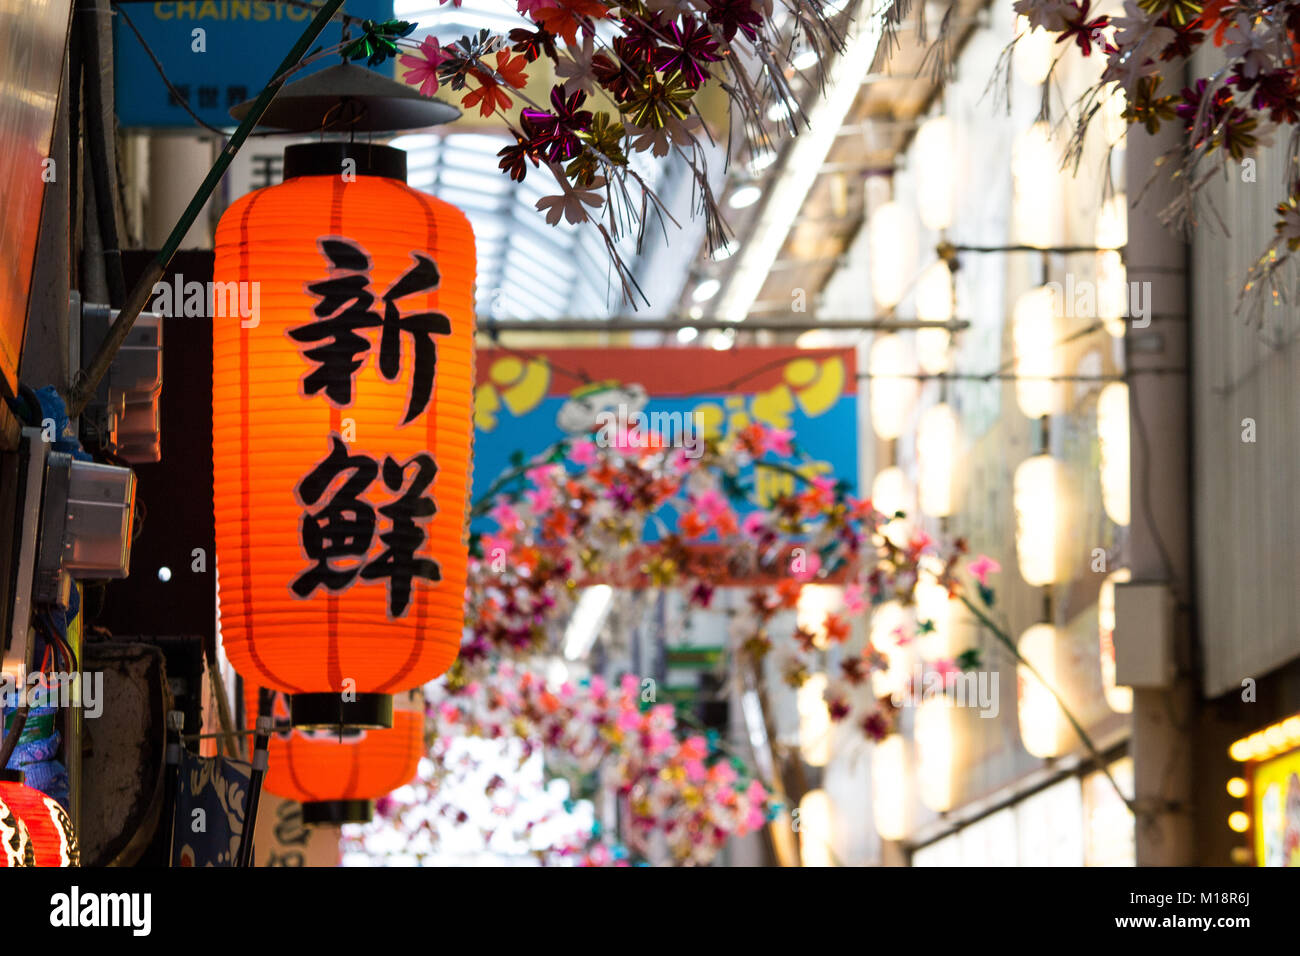 (27 January 2018, Osaka, Japan) Red Lantern(s)  in Janjan Yokocho (a local commercial street) in Shinsekai district, Stock Photo